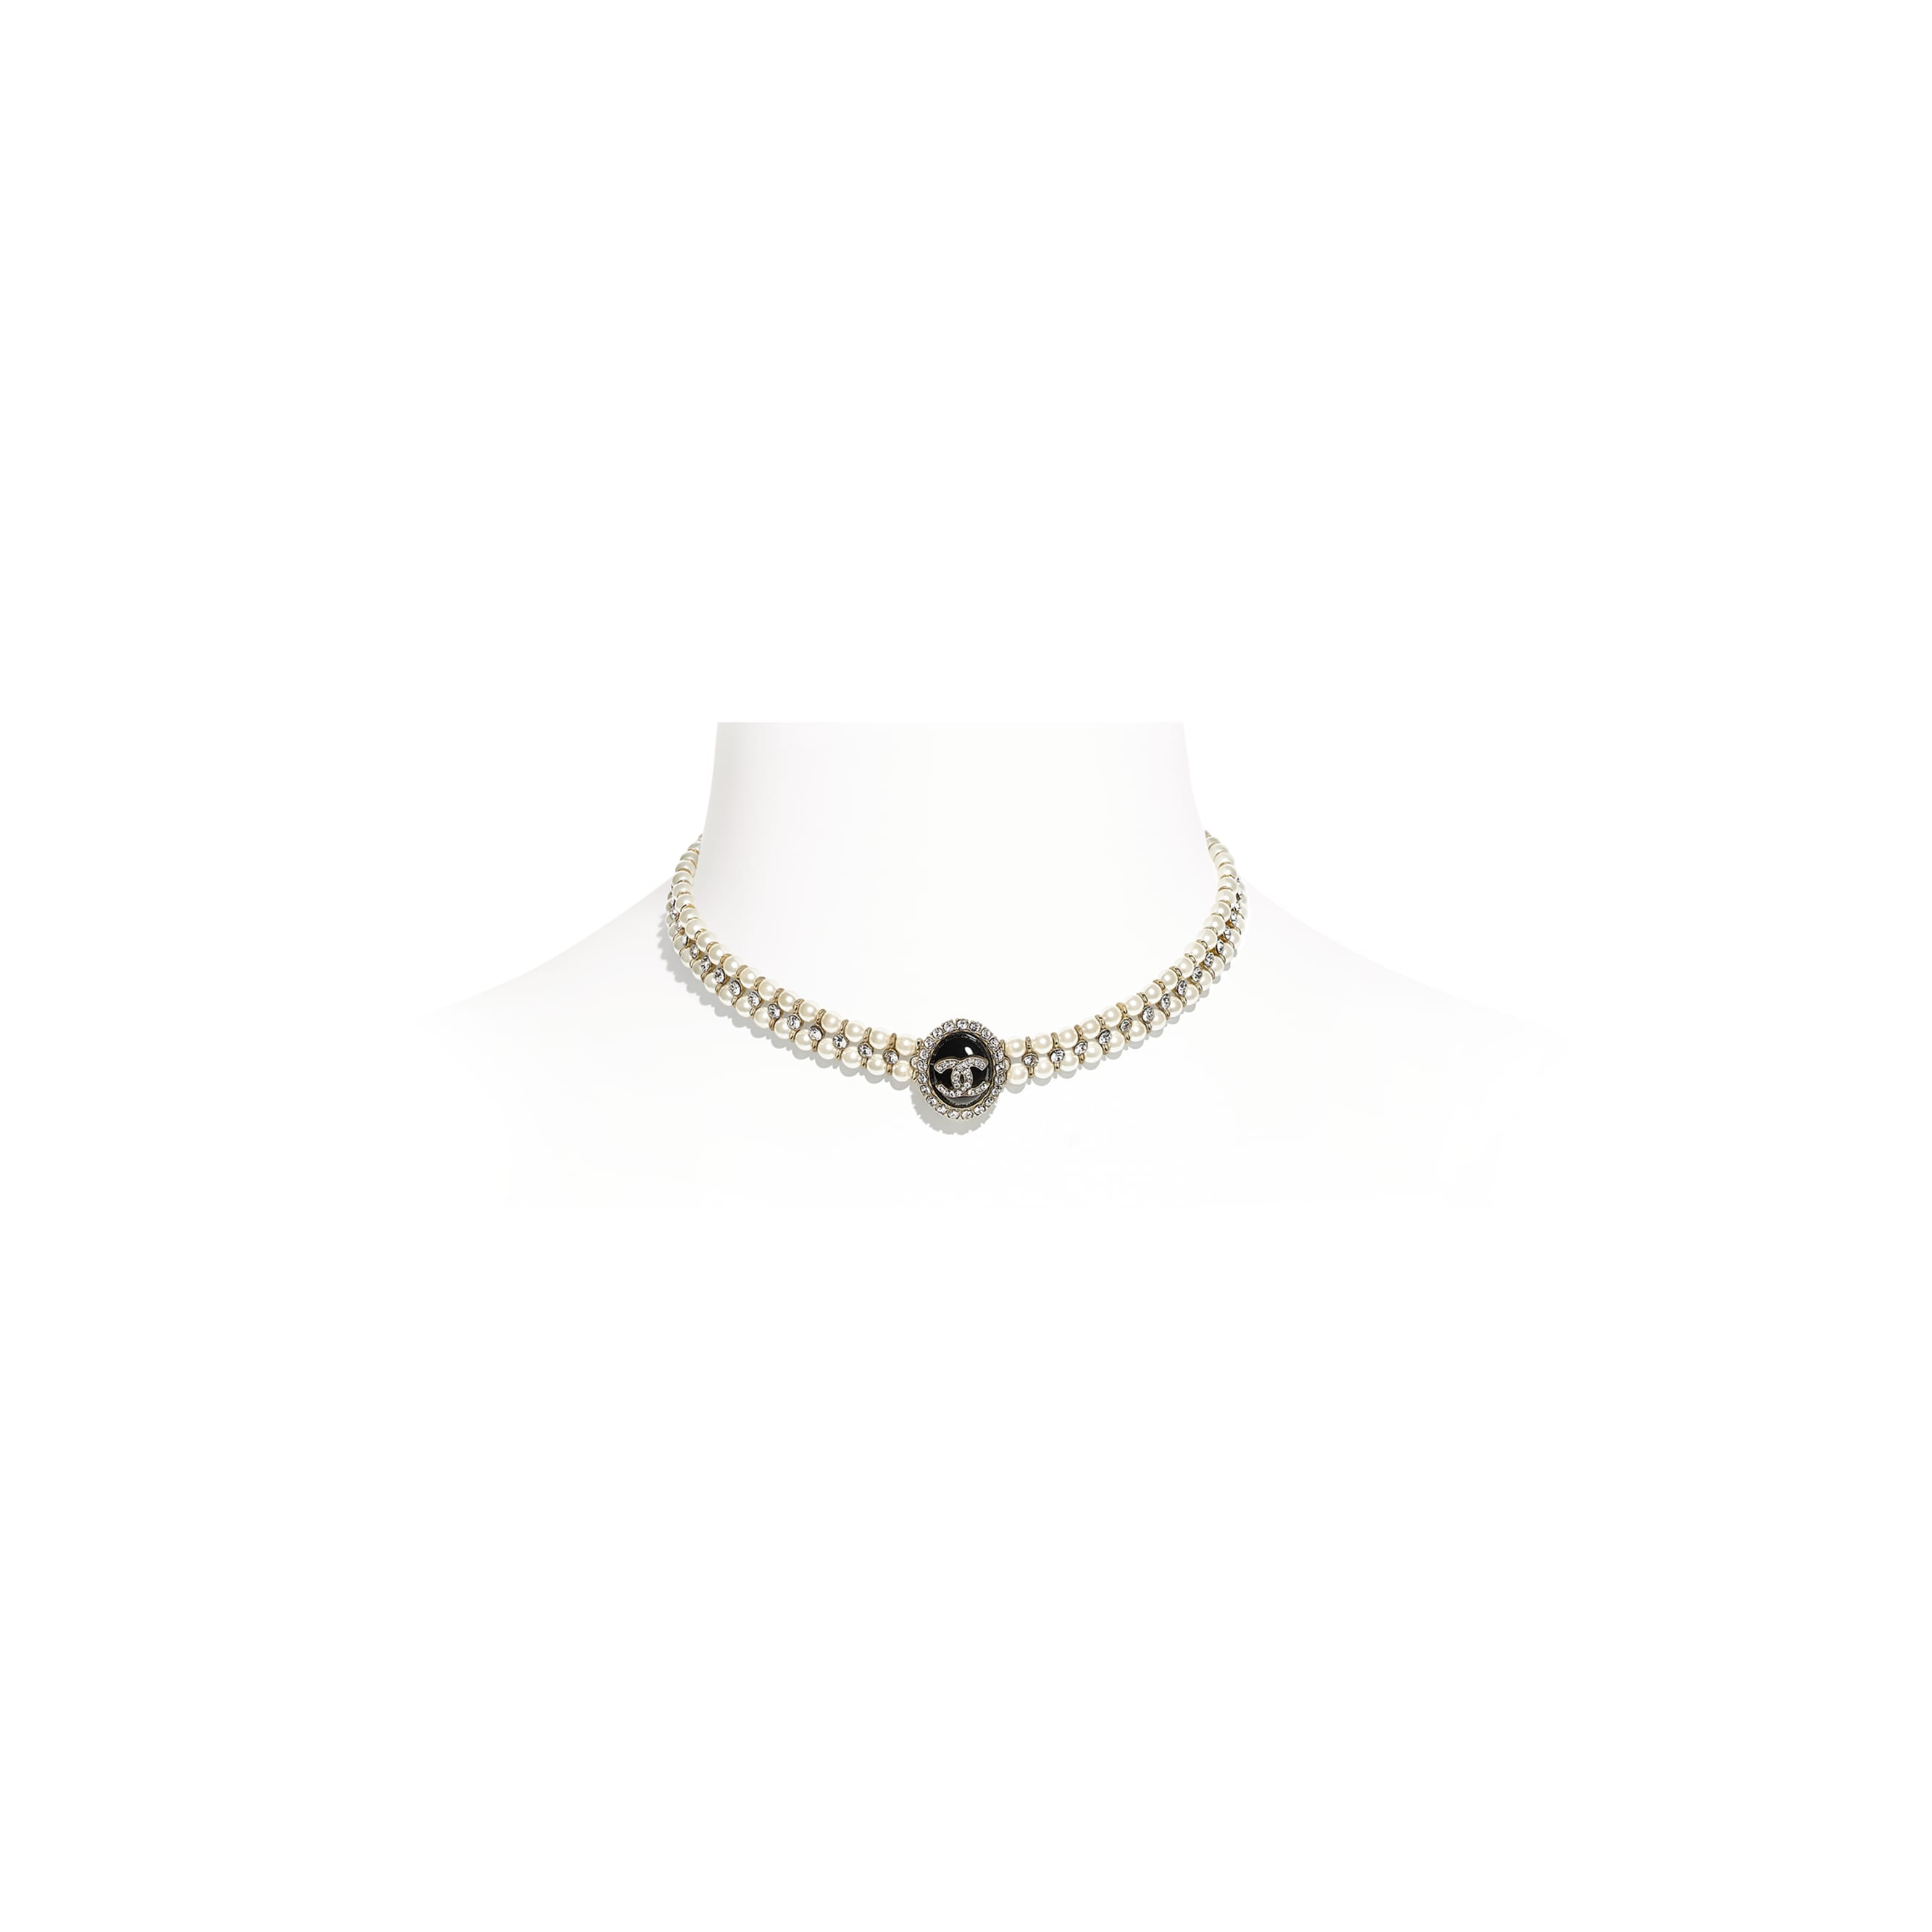 Choker - Gold, Pearly White, Crystal & Black - Metal, Glass Pearls, Diamanté & Resin - CHANEL - Default view - see standard sized version